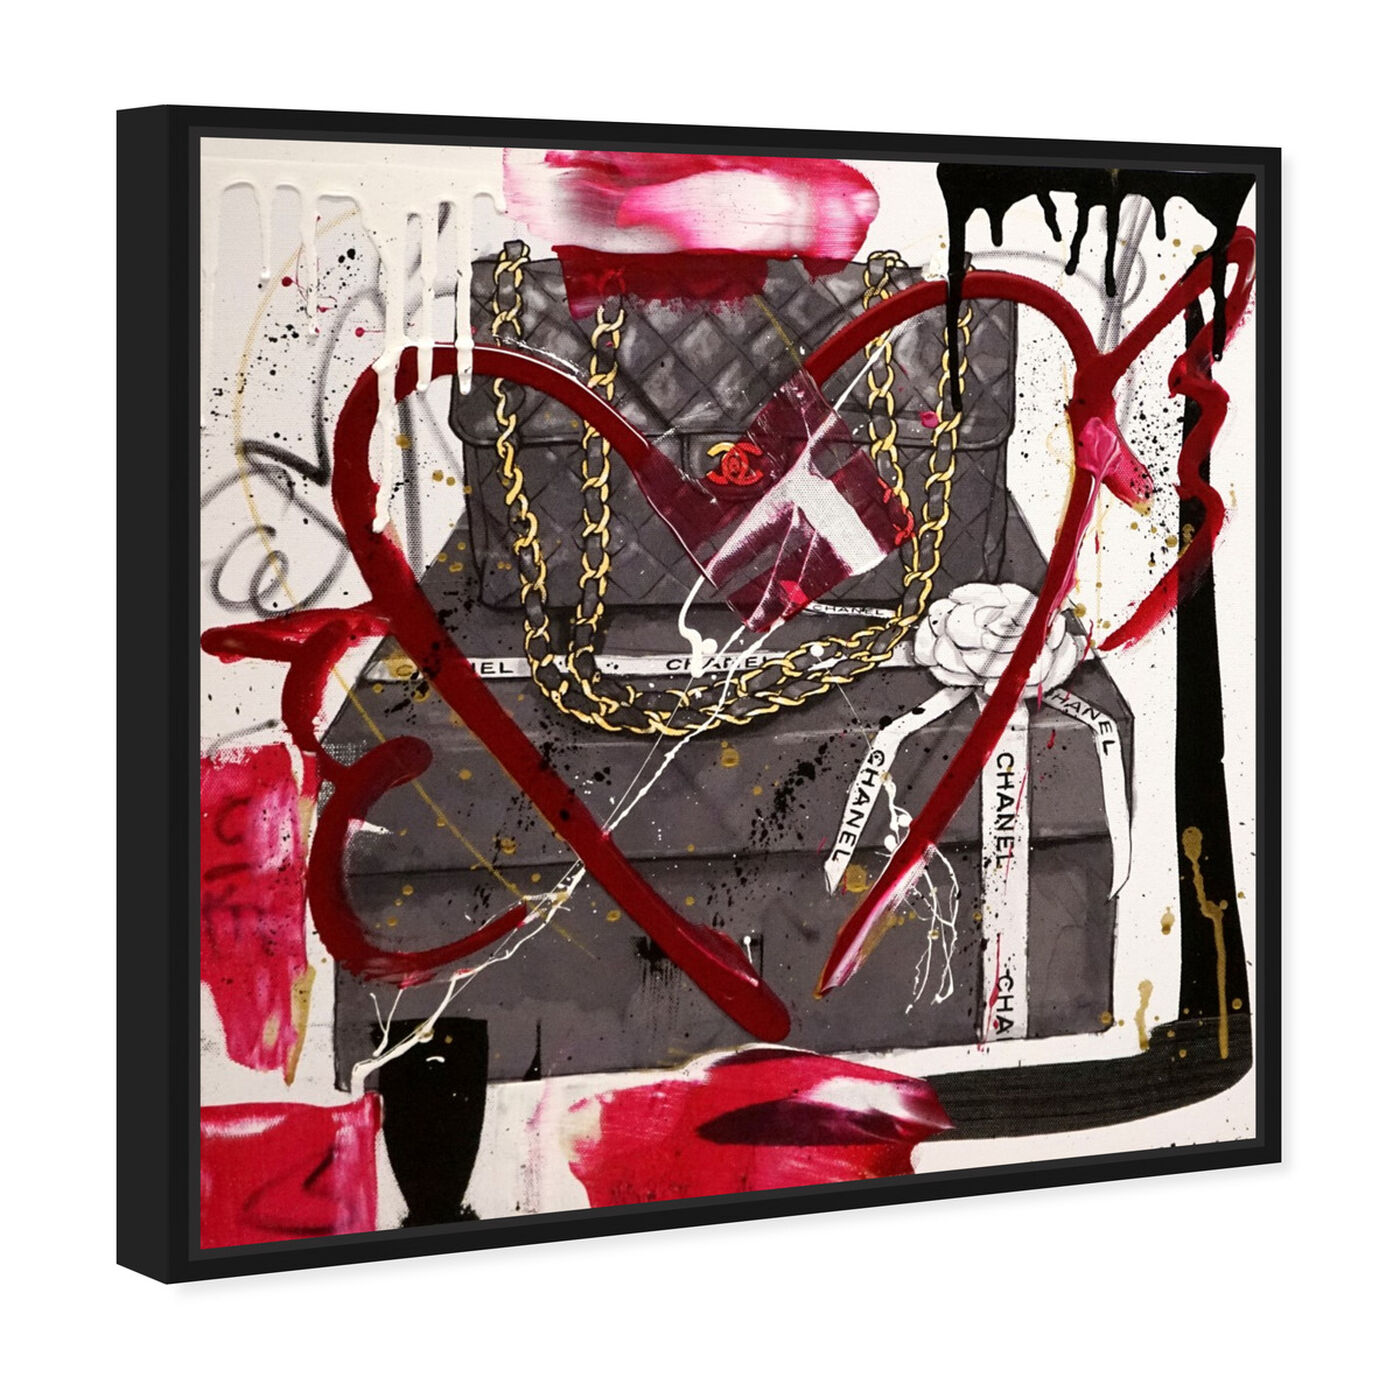 Angled view of Boxed Beauty Remix featuring fashion and glam and handbags art.